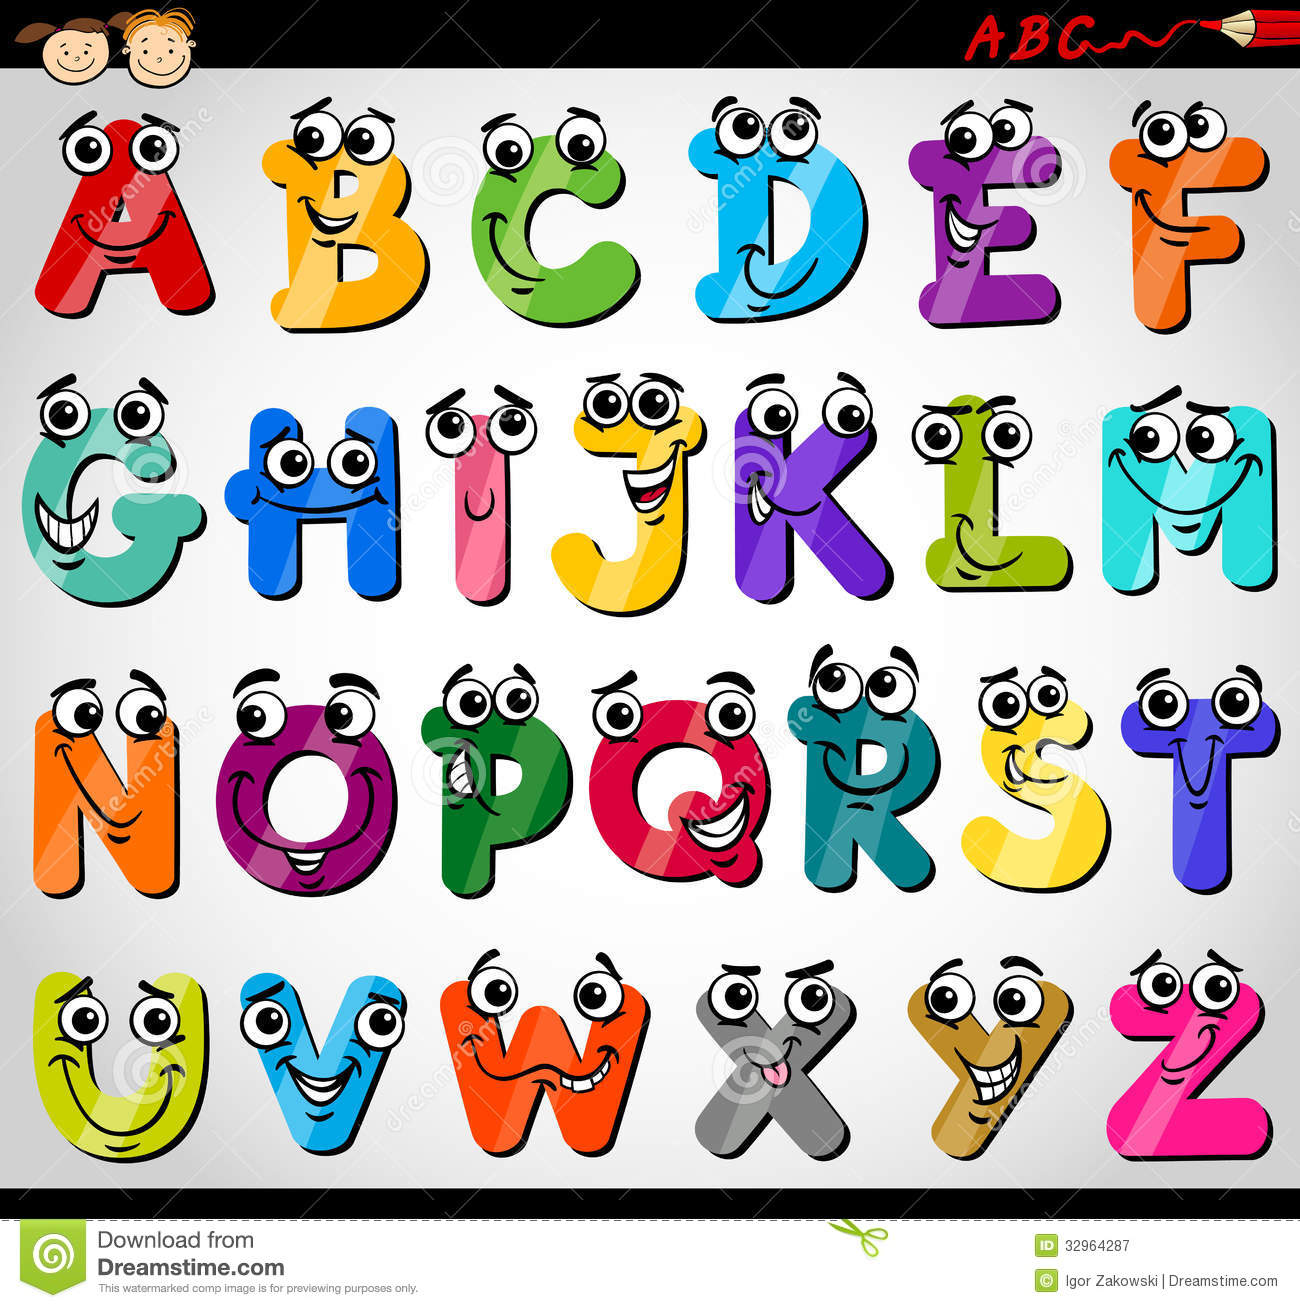 A Z Cartoon Characters : Capital letters alphabet cartoon illustration royalty free